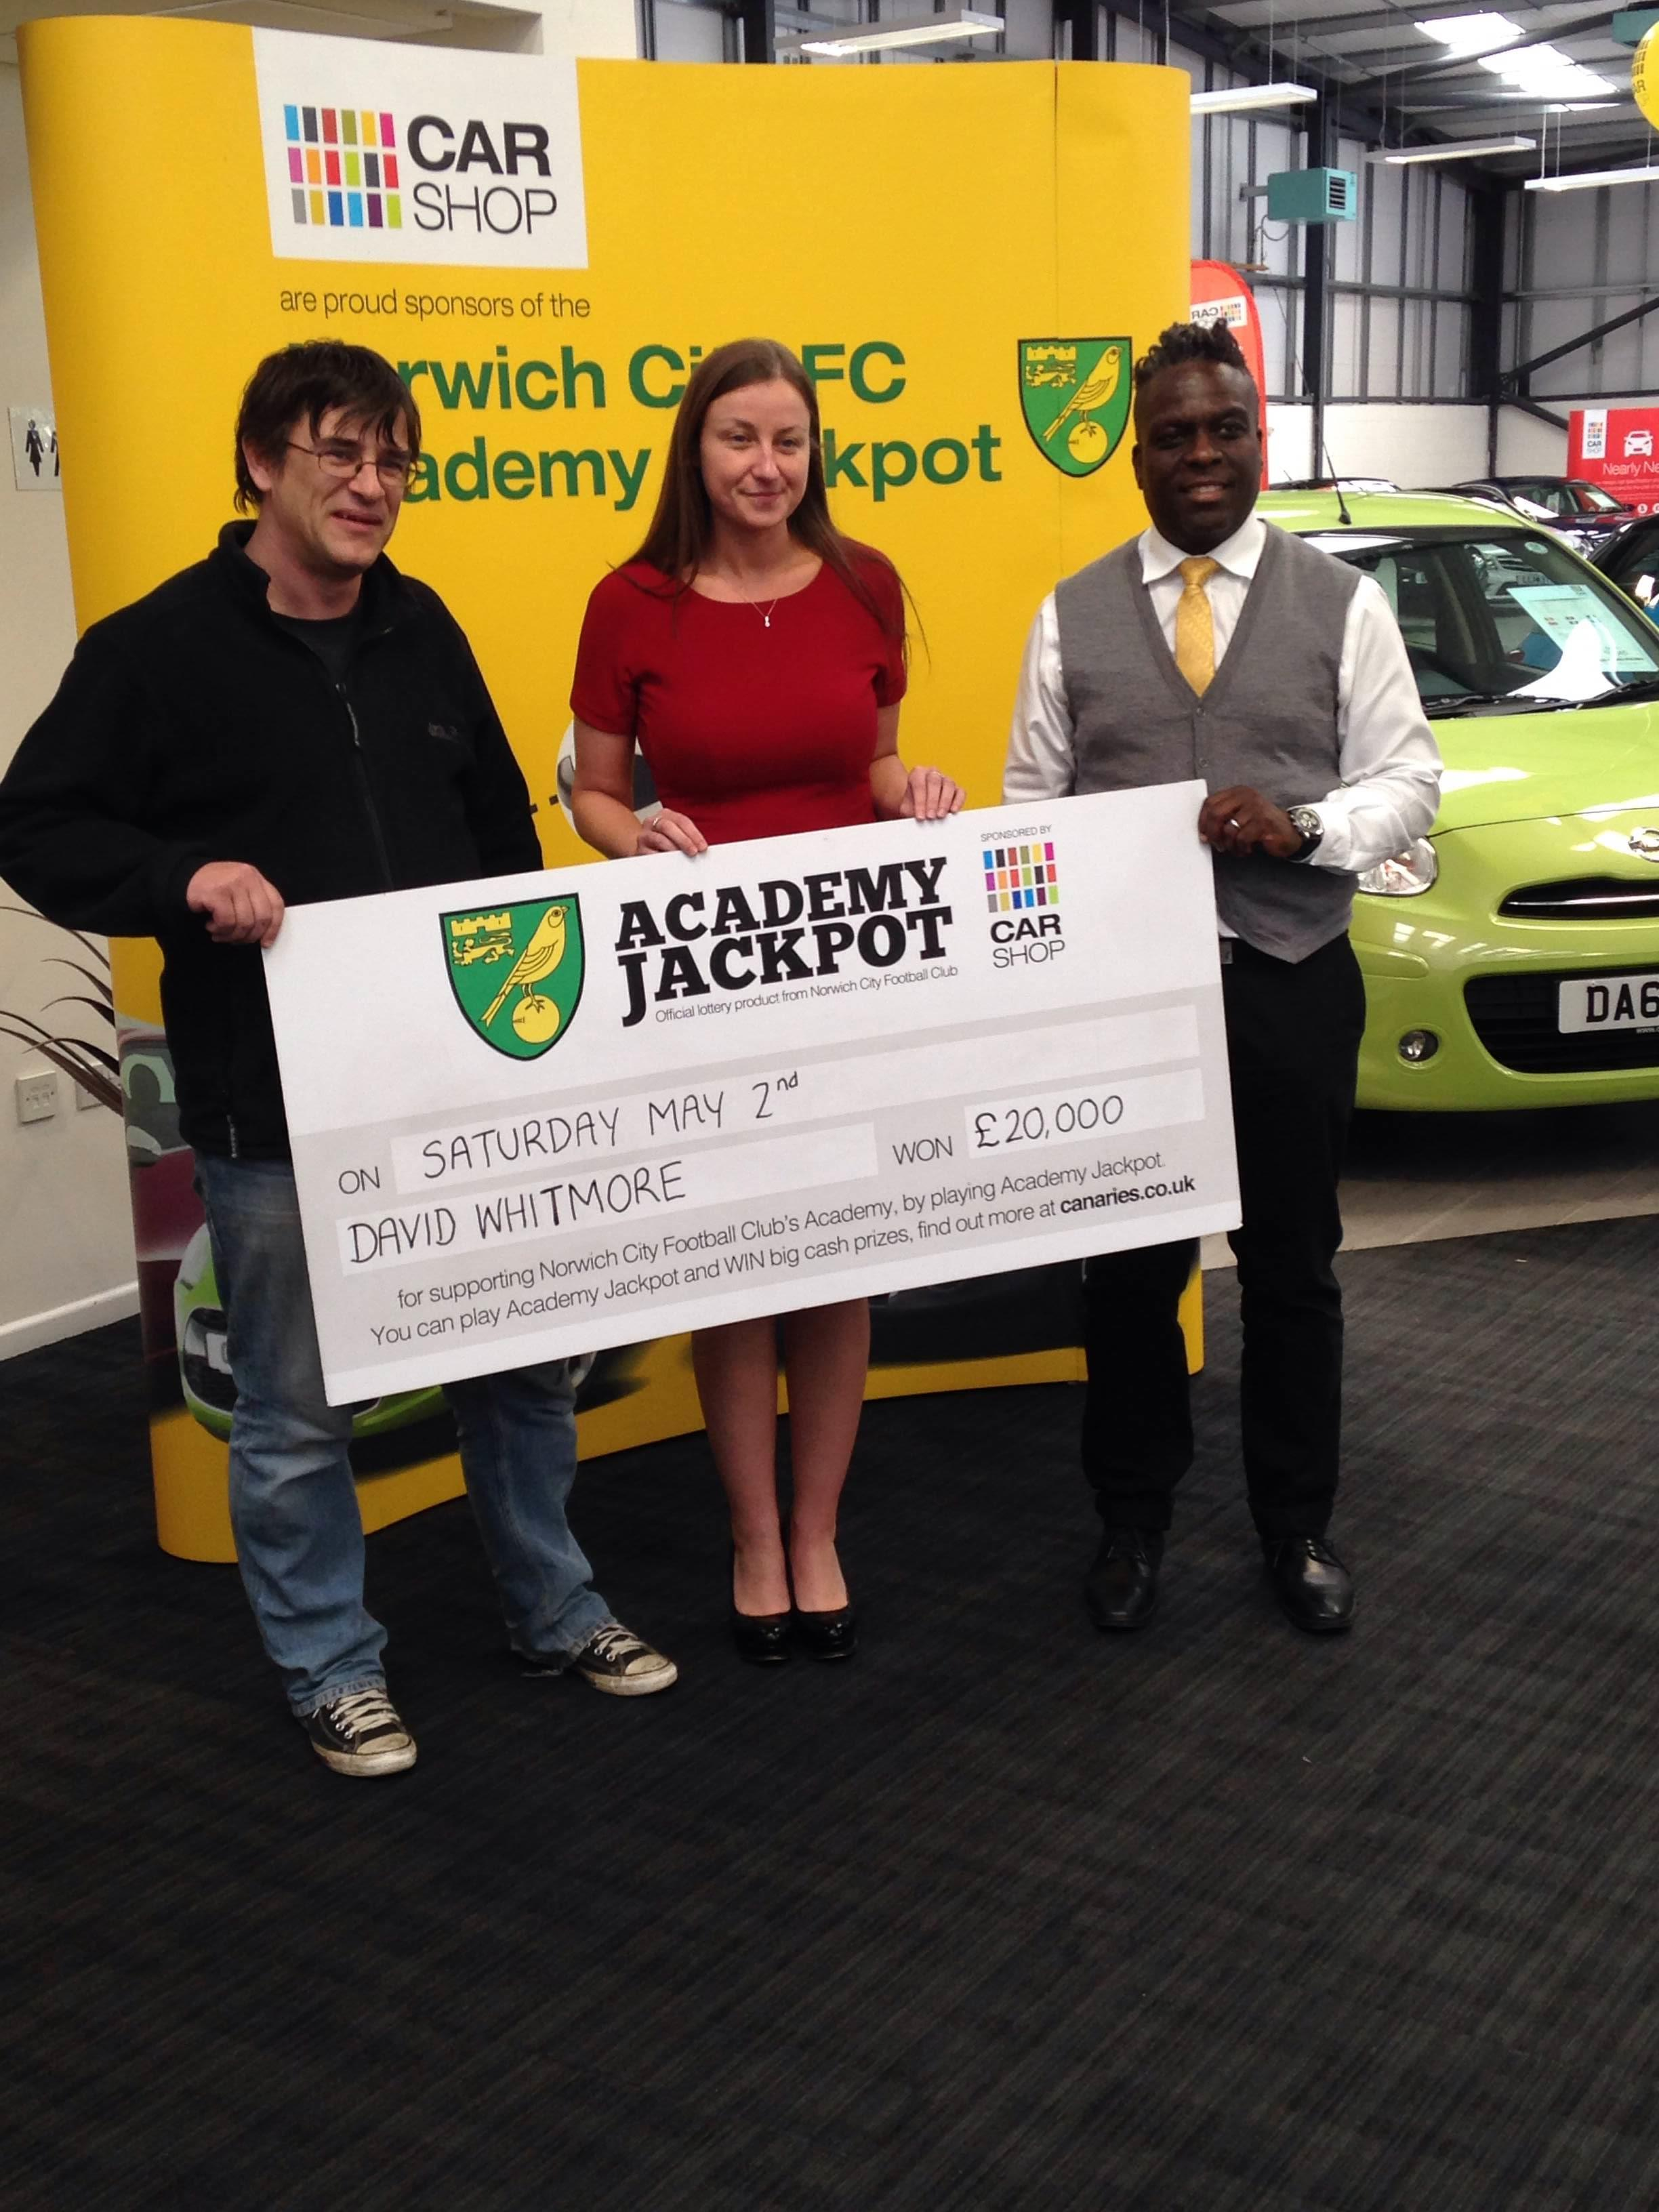 Scoring the £20,000 Academy Jackpot at CarShop Norwich